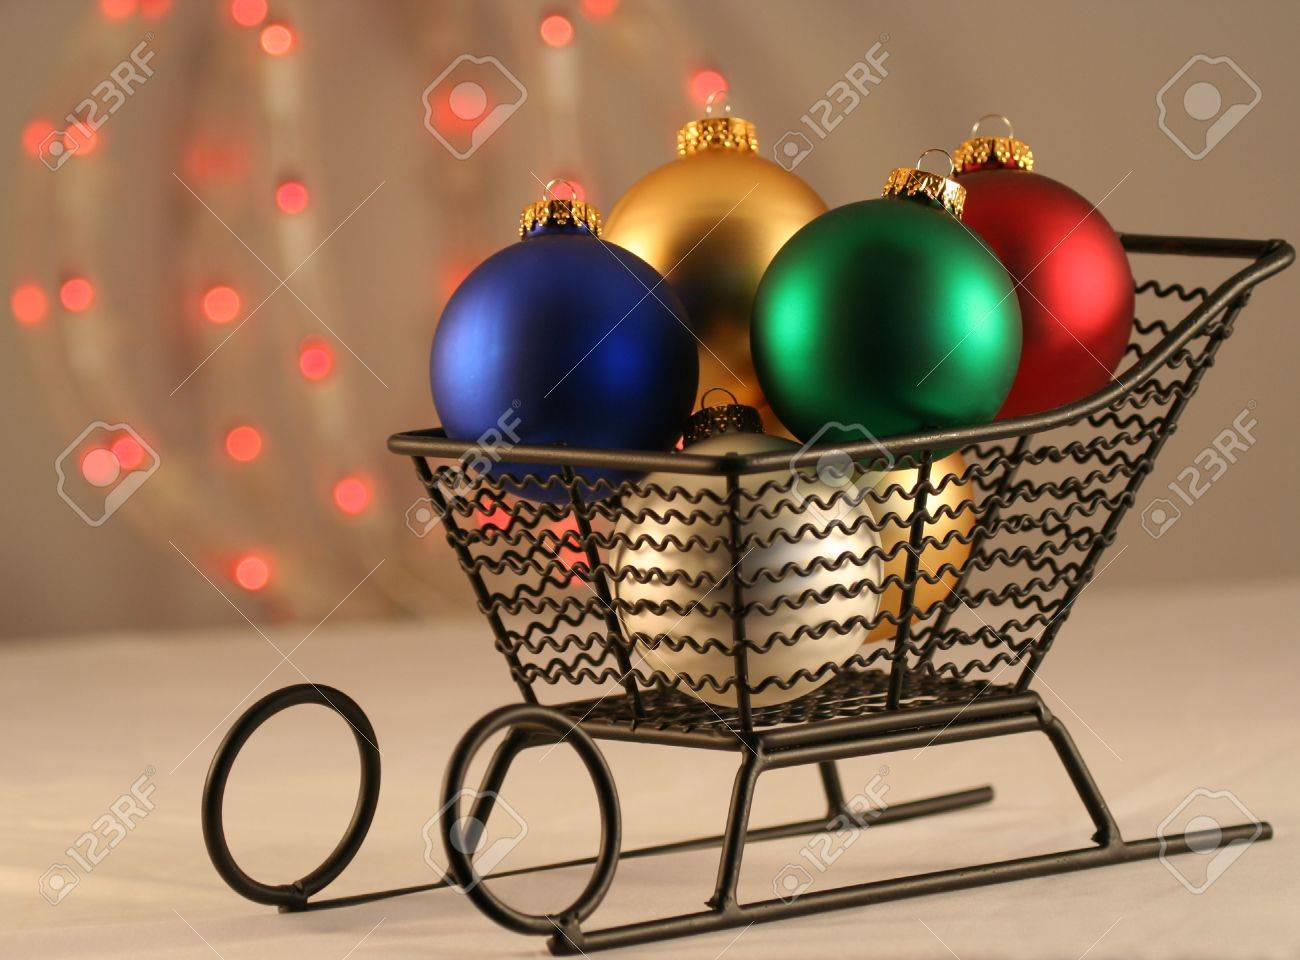 Red green and white christmas ornaments - A Christmas Sleigh Of Blue Gold Green Red And White Ball Ornaments With